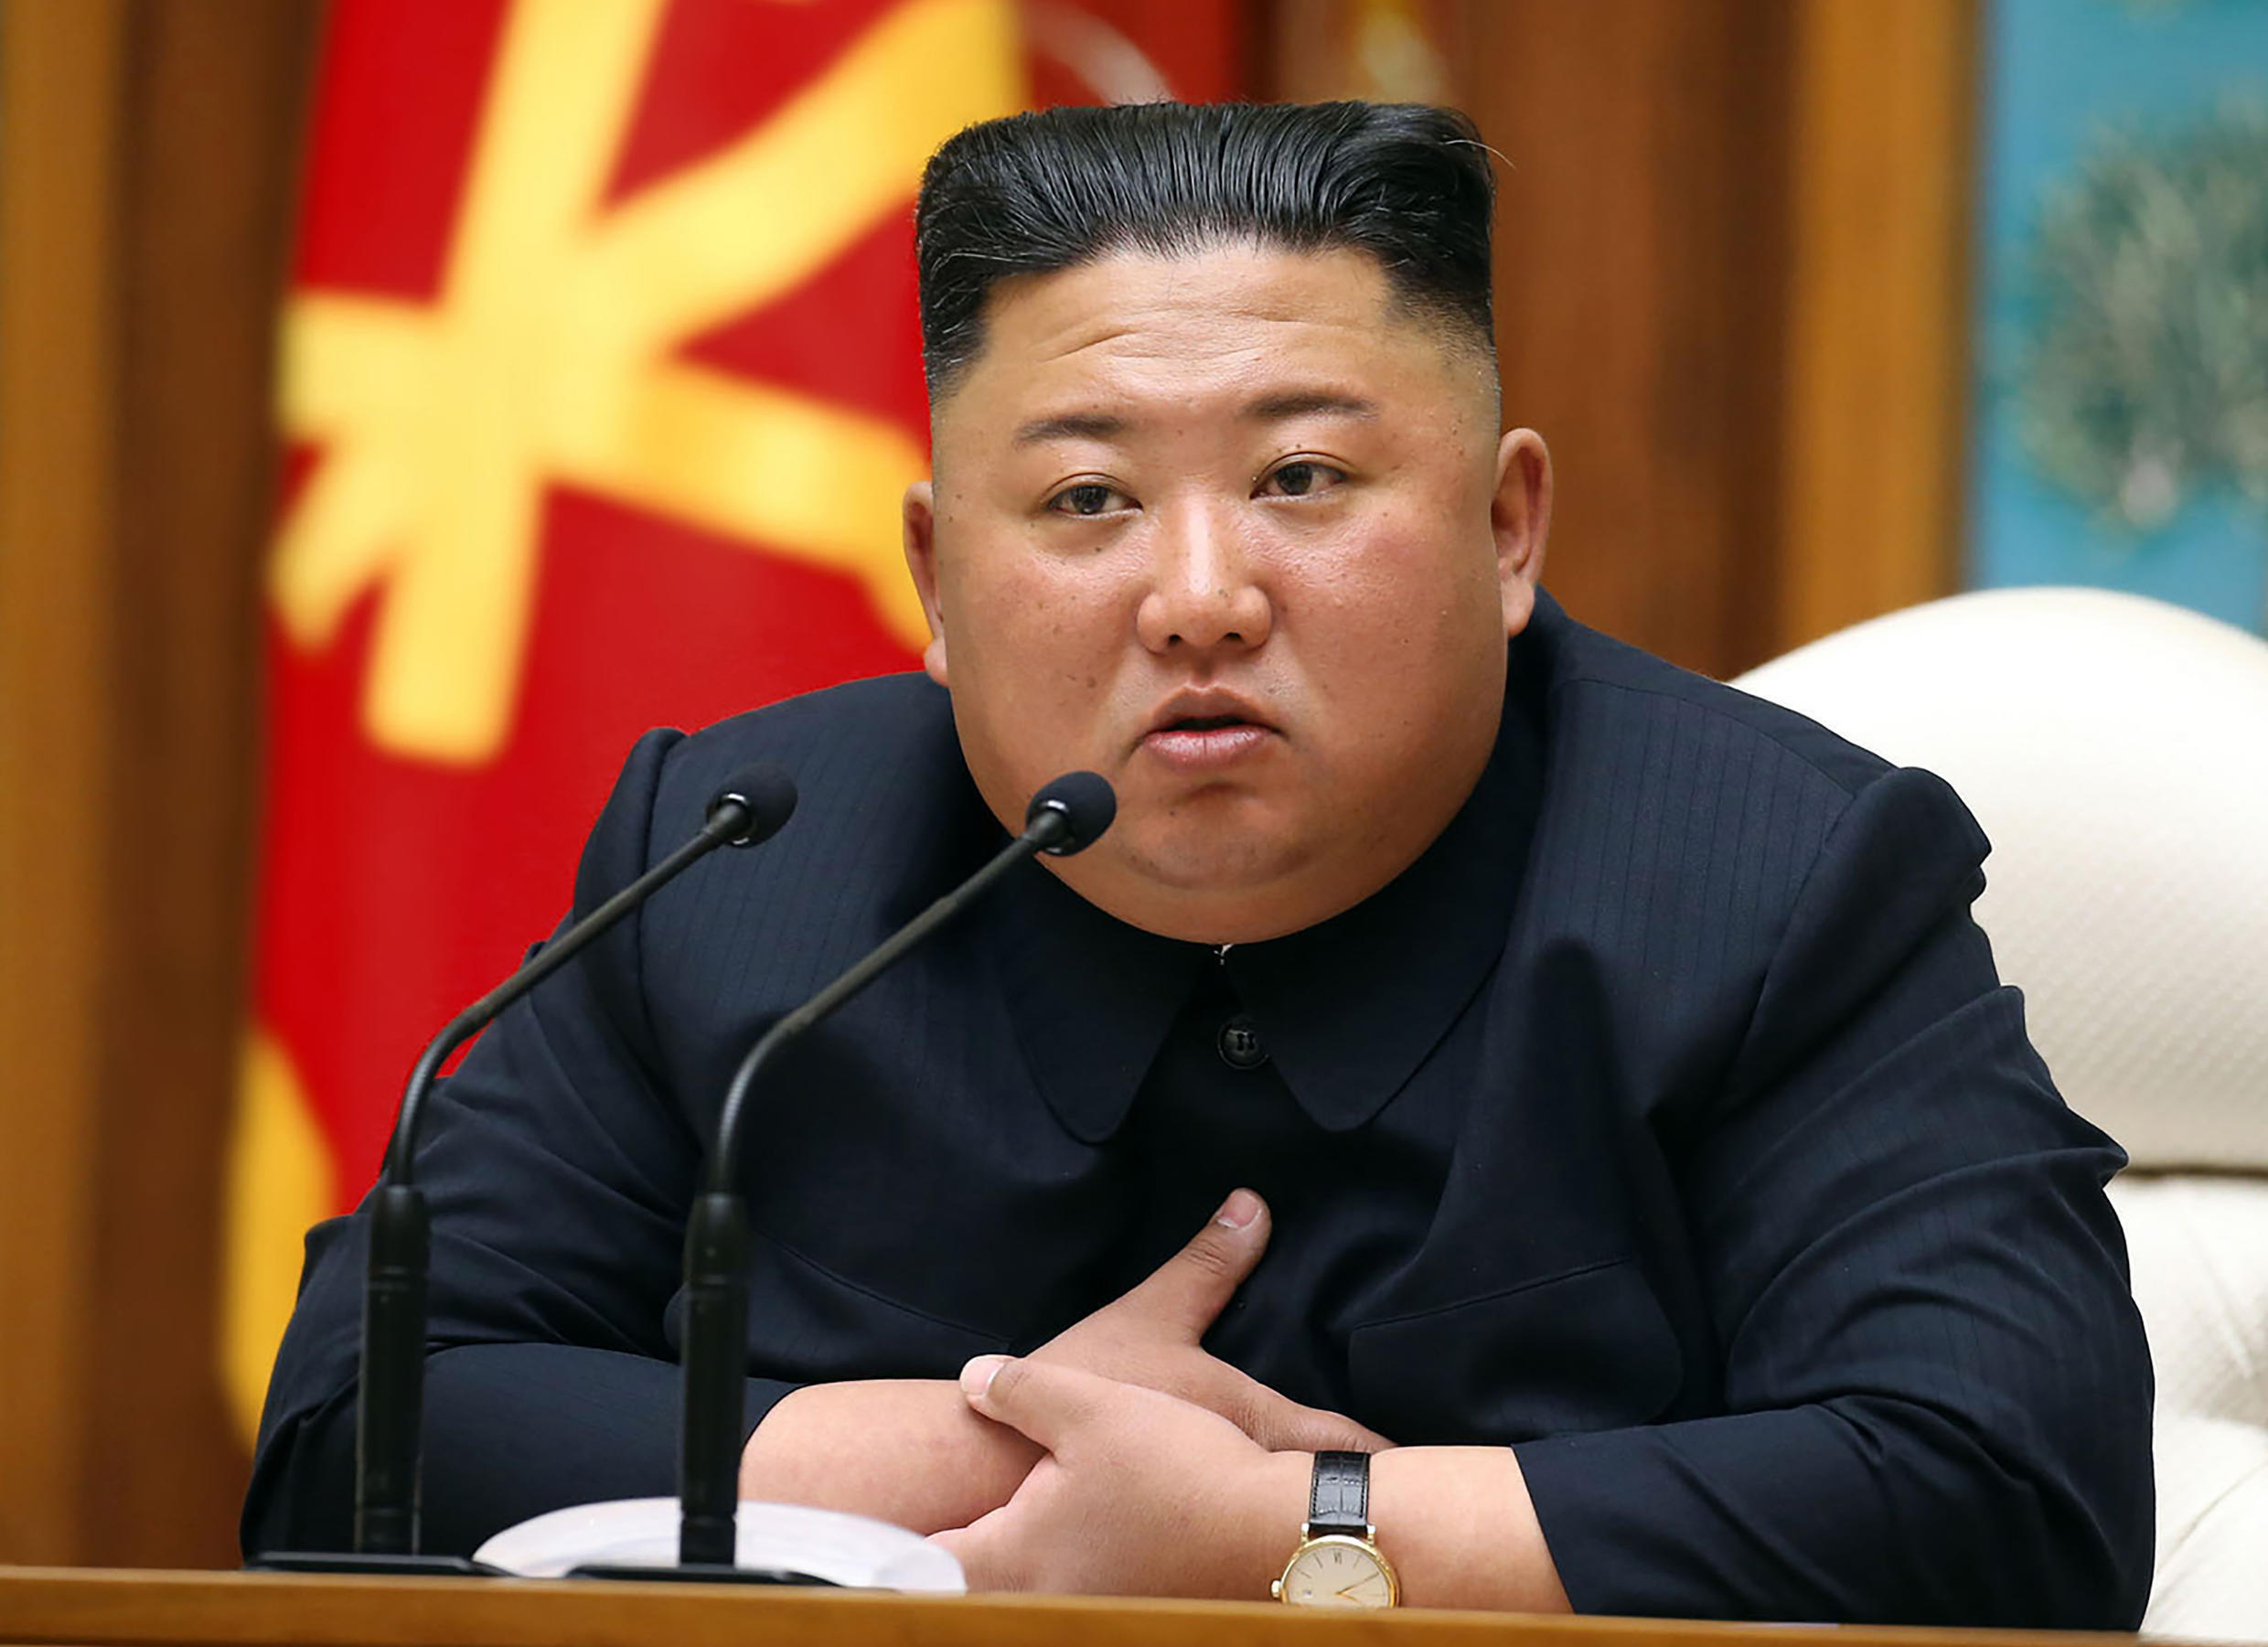 Apologies from the North -- let alone attributed to Kim Jong Un personally -- are extremely unusual